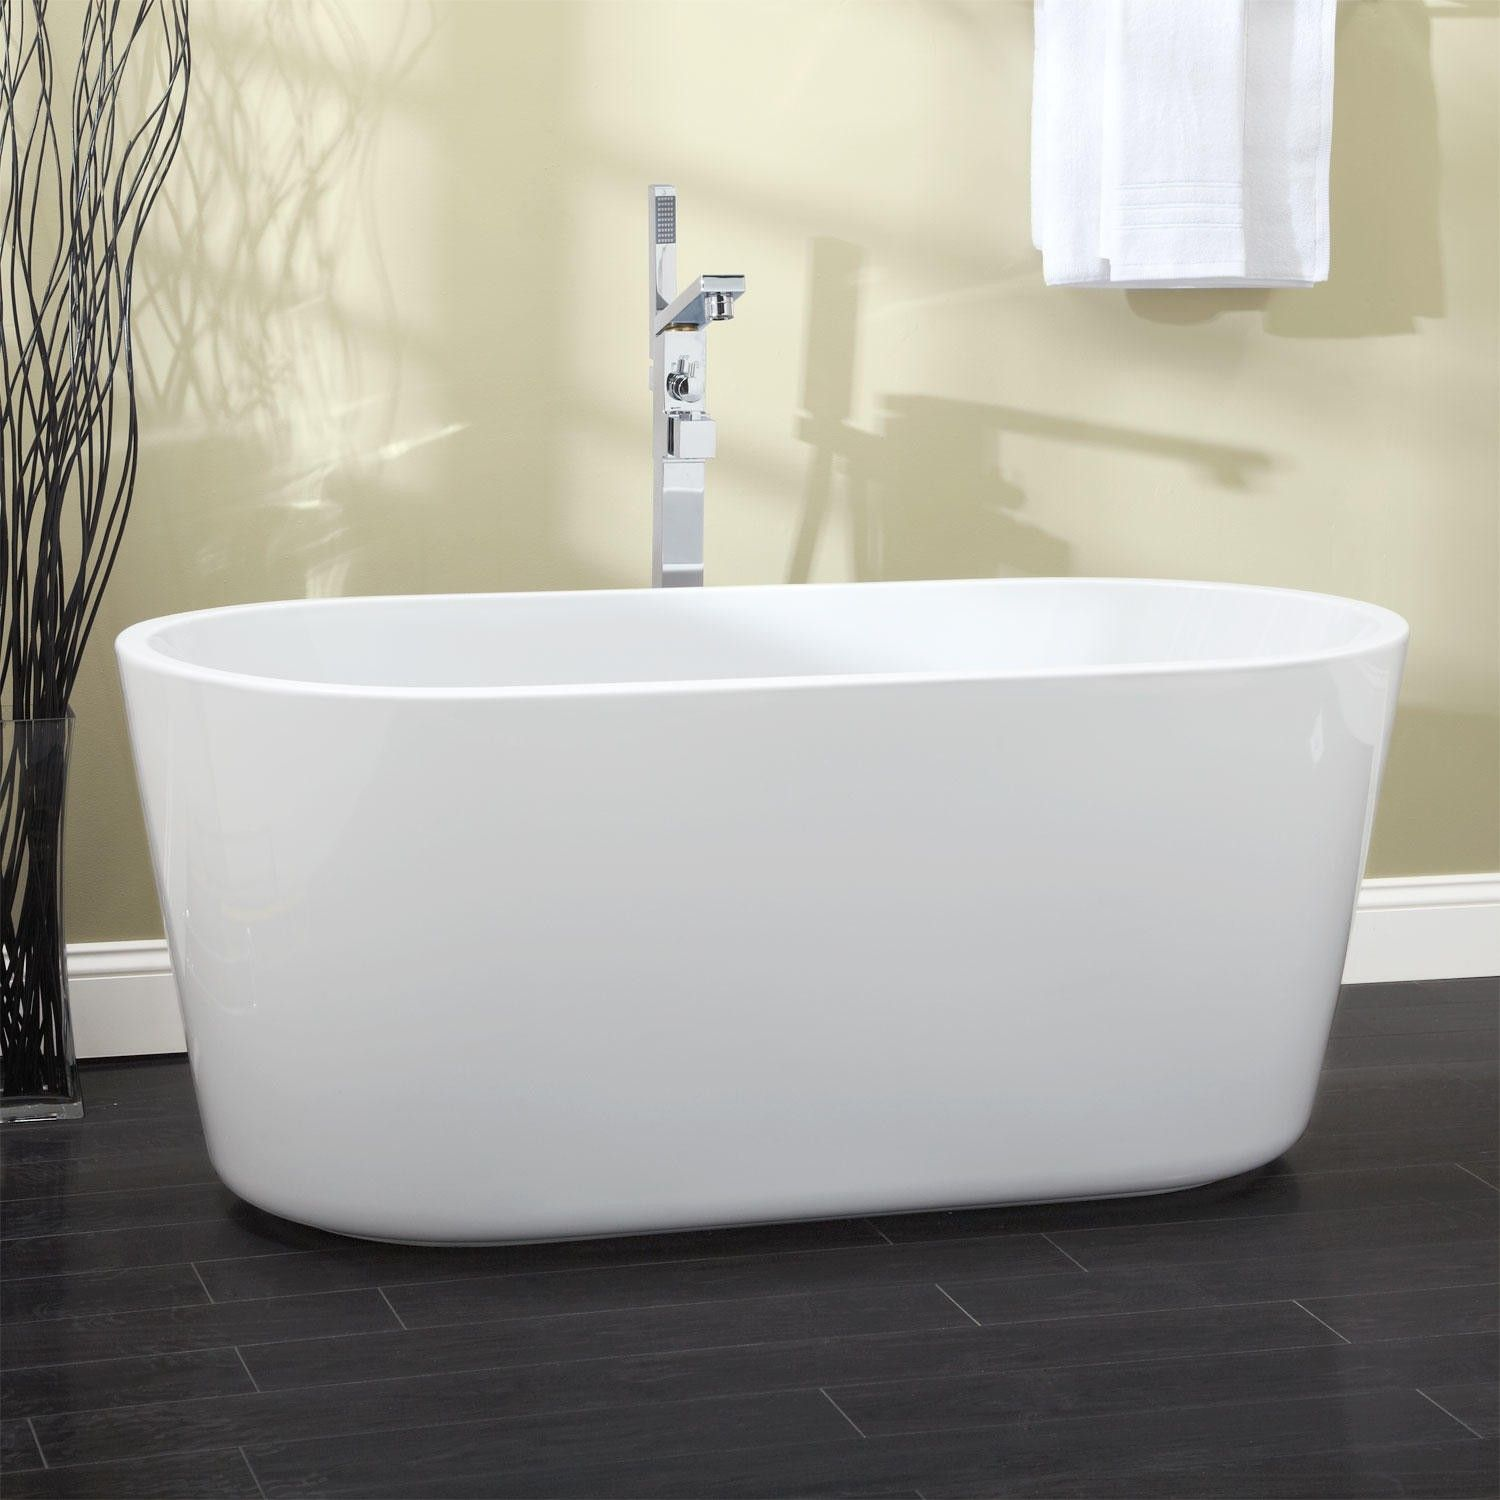 tub american bathtub decoration bath idea tubs bathtubs fabulous freestanding alone stunning shower soaker standing acrylic sheba standard bathroom for free exciting stand